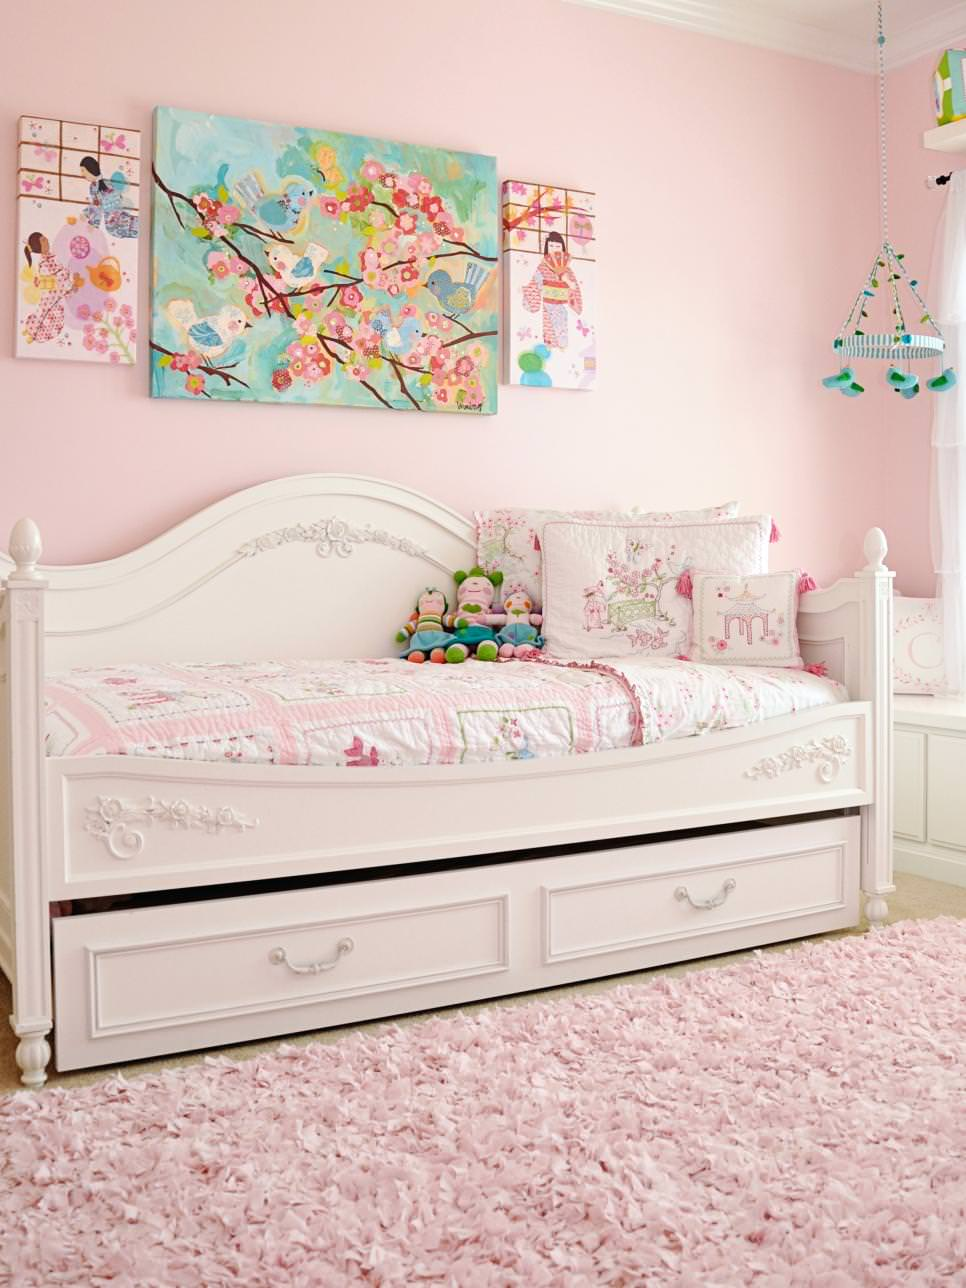 Joyful Pink and White Wall Paper